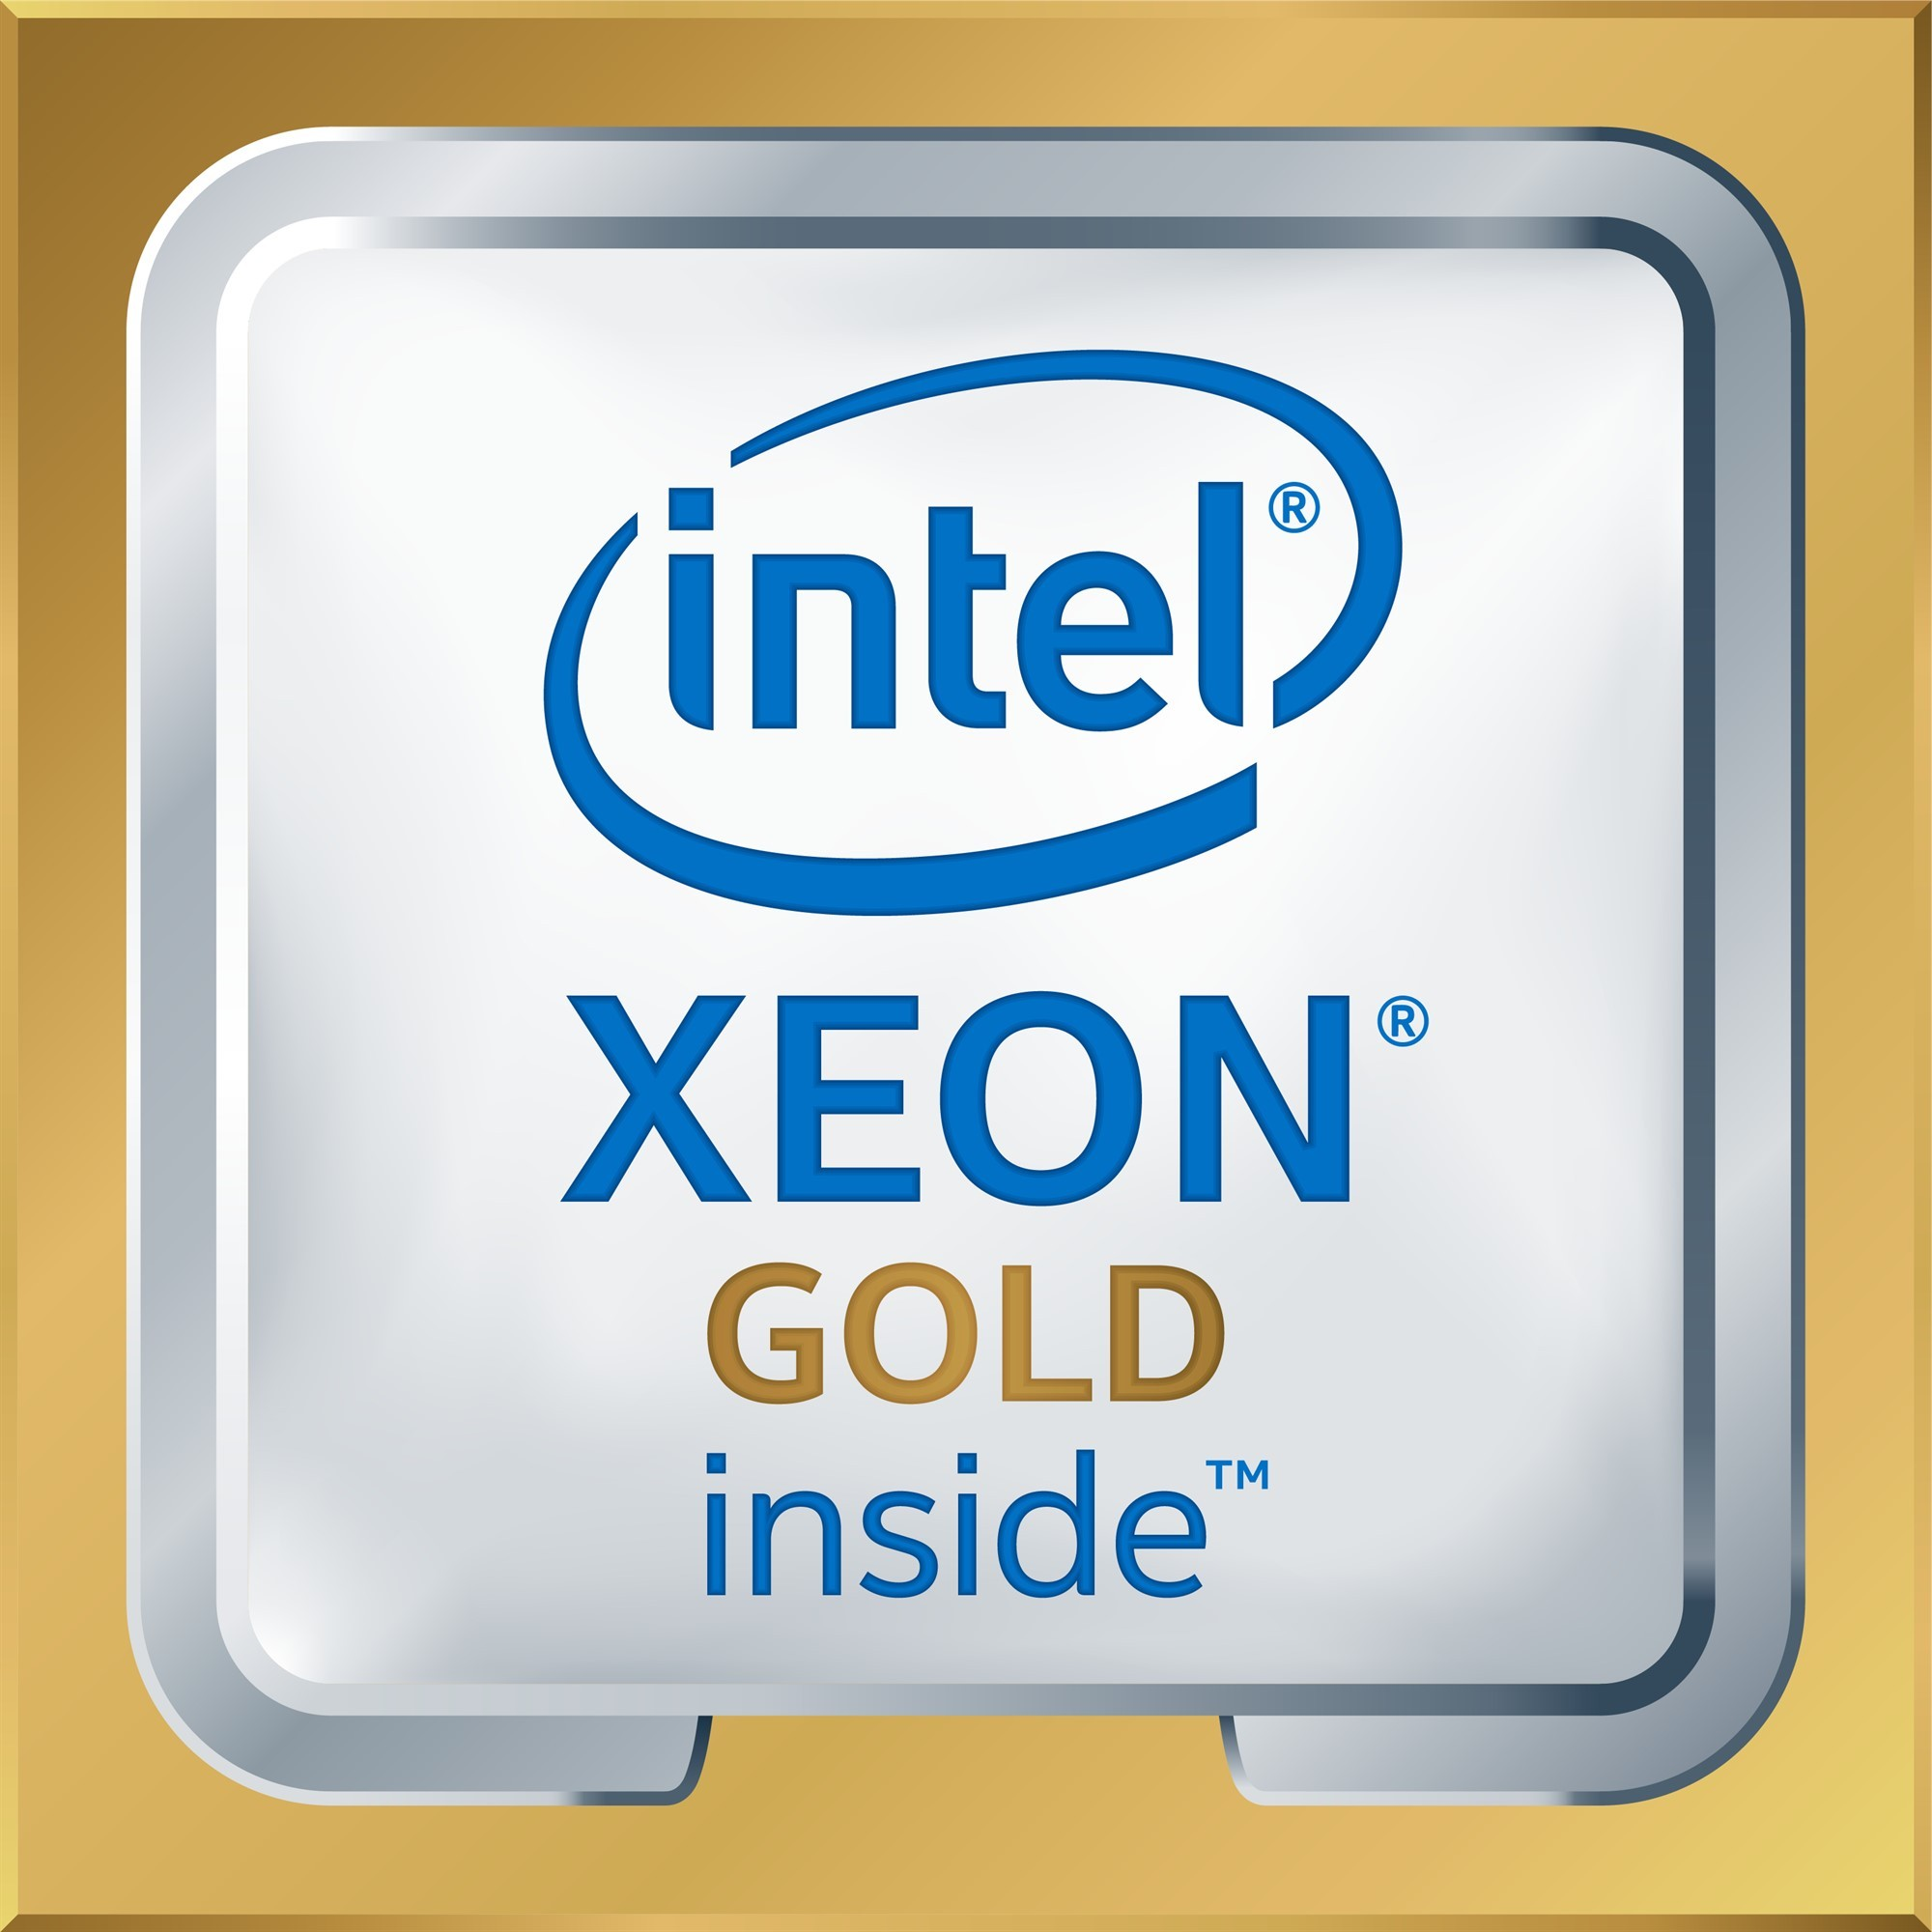 INTEL XEON GOLD 6154 PROCESSOR (24.75M CACHE, 3.00 GHZ) 3.00GHZ 24.8MB L3